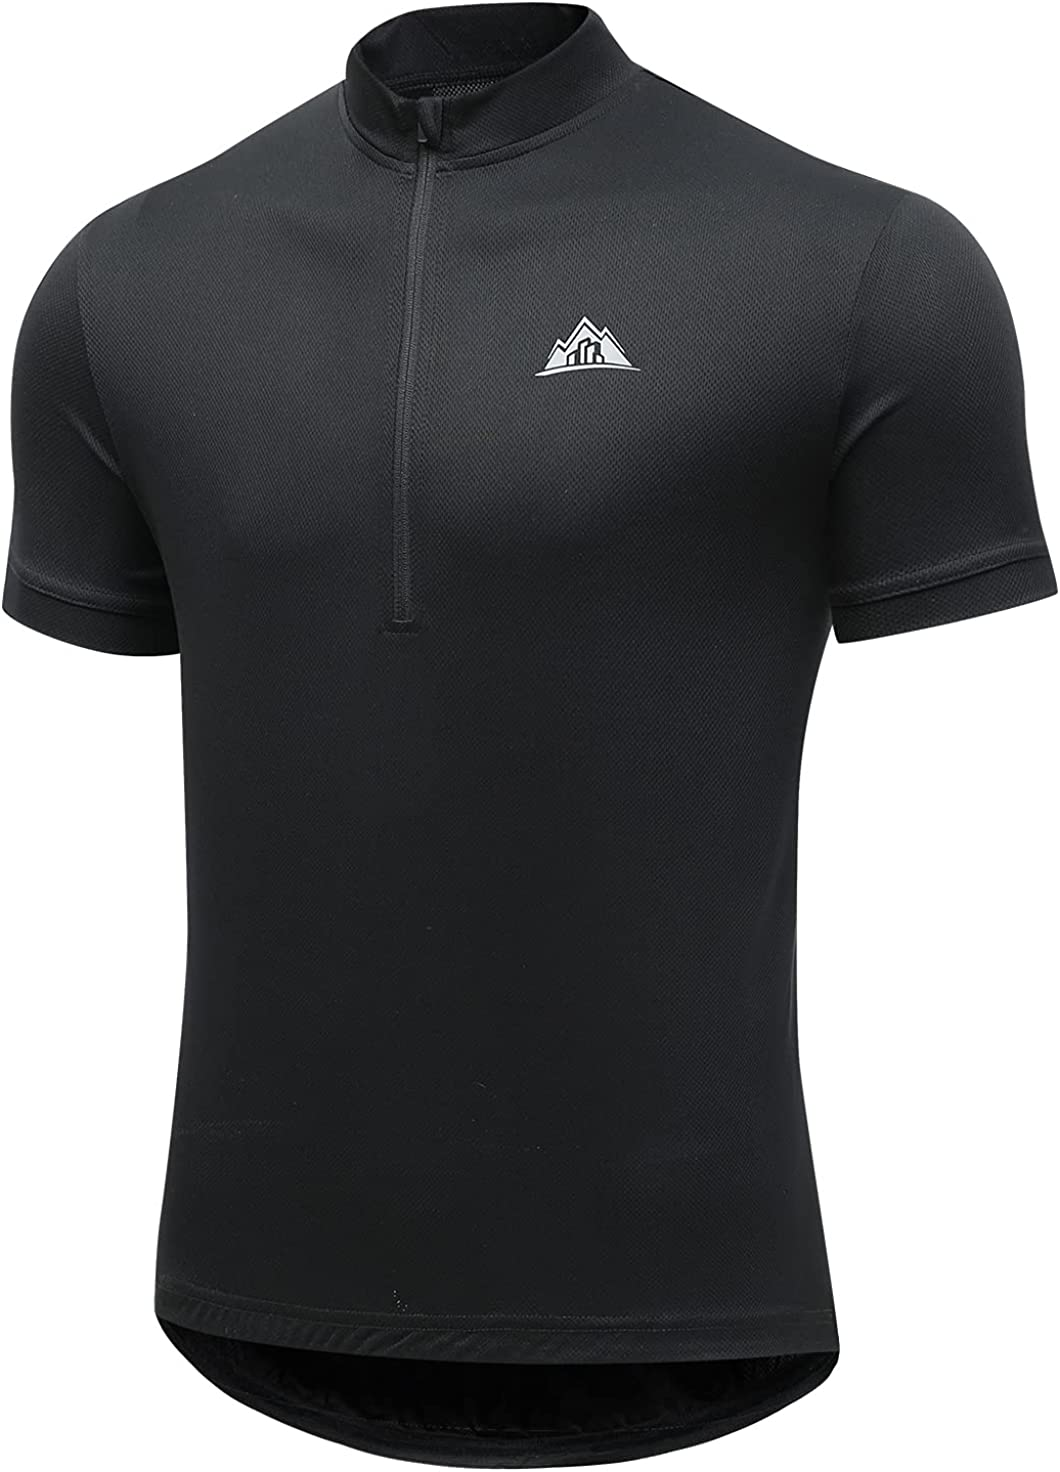 GUOTN Men's Same day shipping Breathable Cycling Jersey with Sleeve Free shipping anywhere in the nation Short Shirt 3